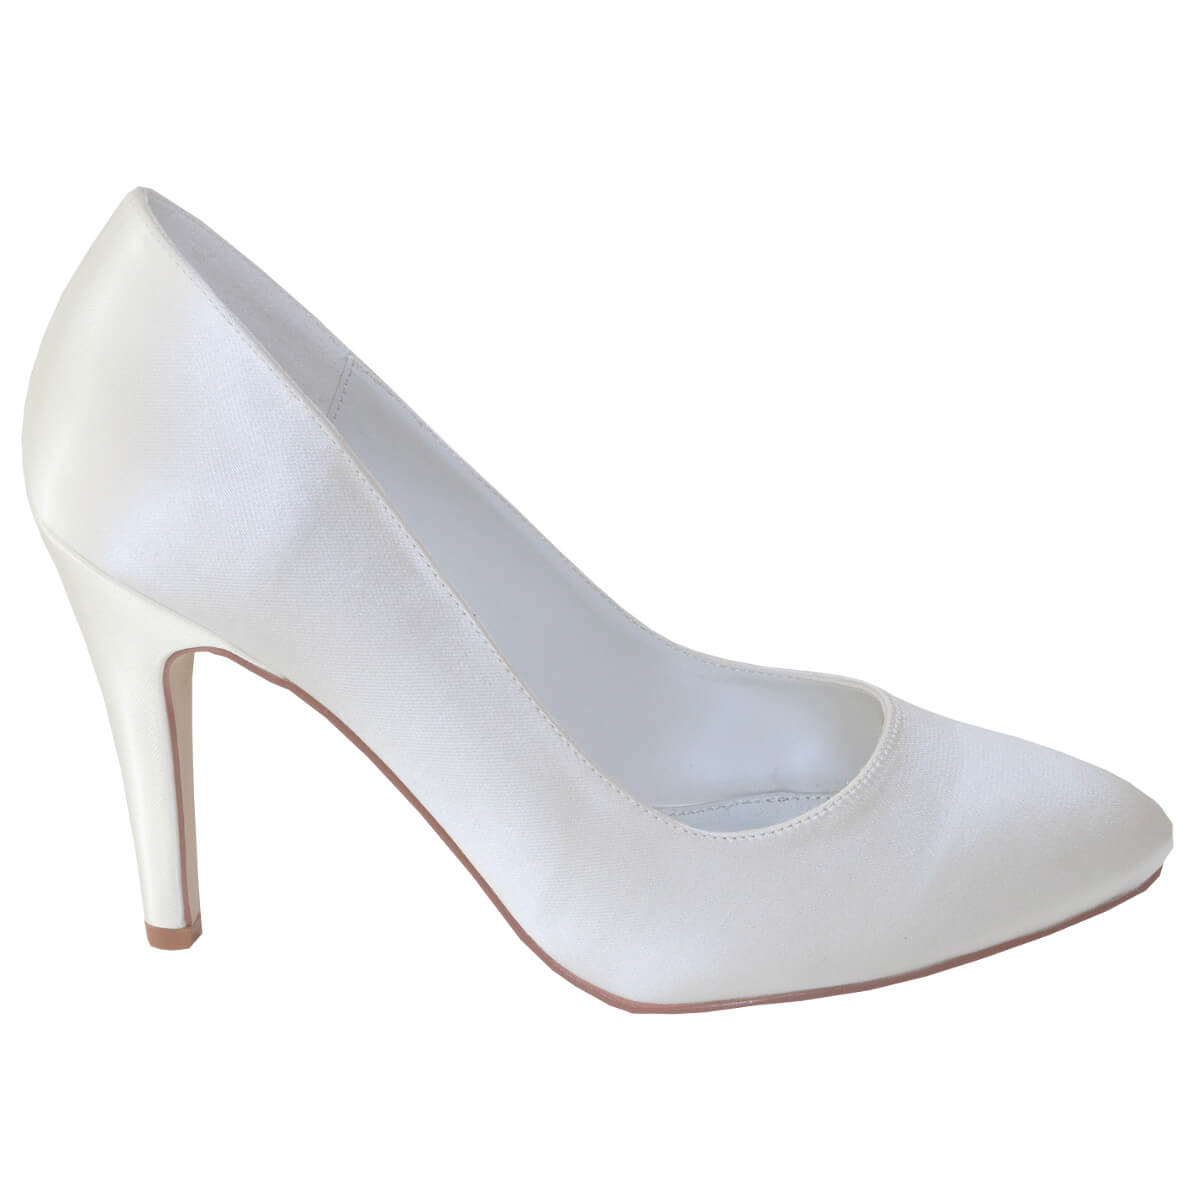 526ae2e1d40 Mia. £54.00 £15.00. Mia is a stunningly simple classic bridal court shoe  crafted in ivory satin with a delicate high heel and elegant almond point  toe.